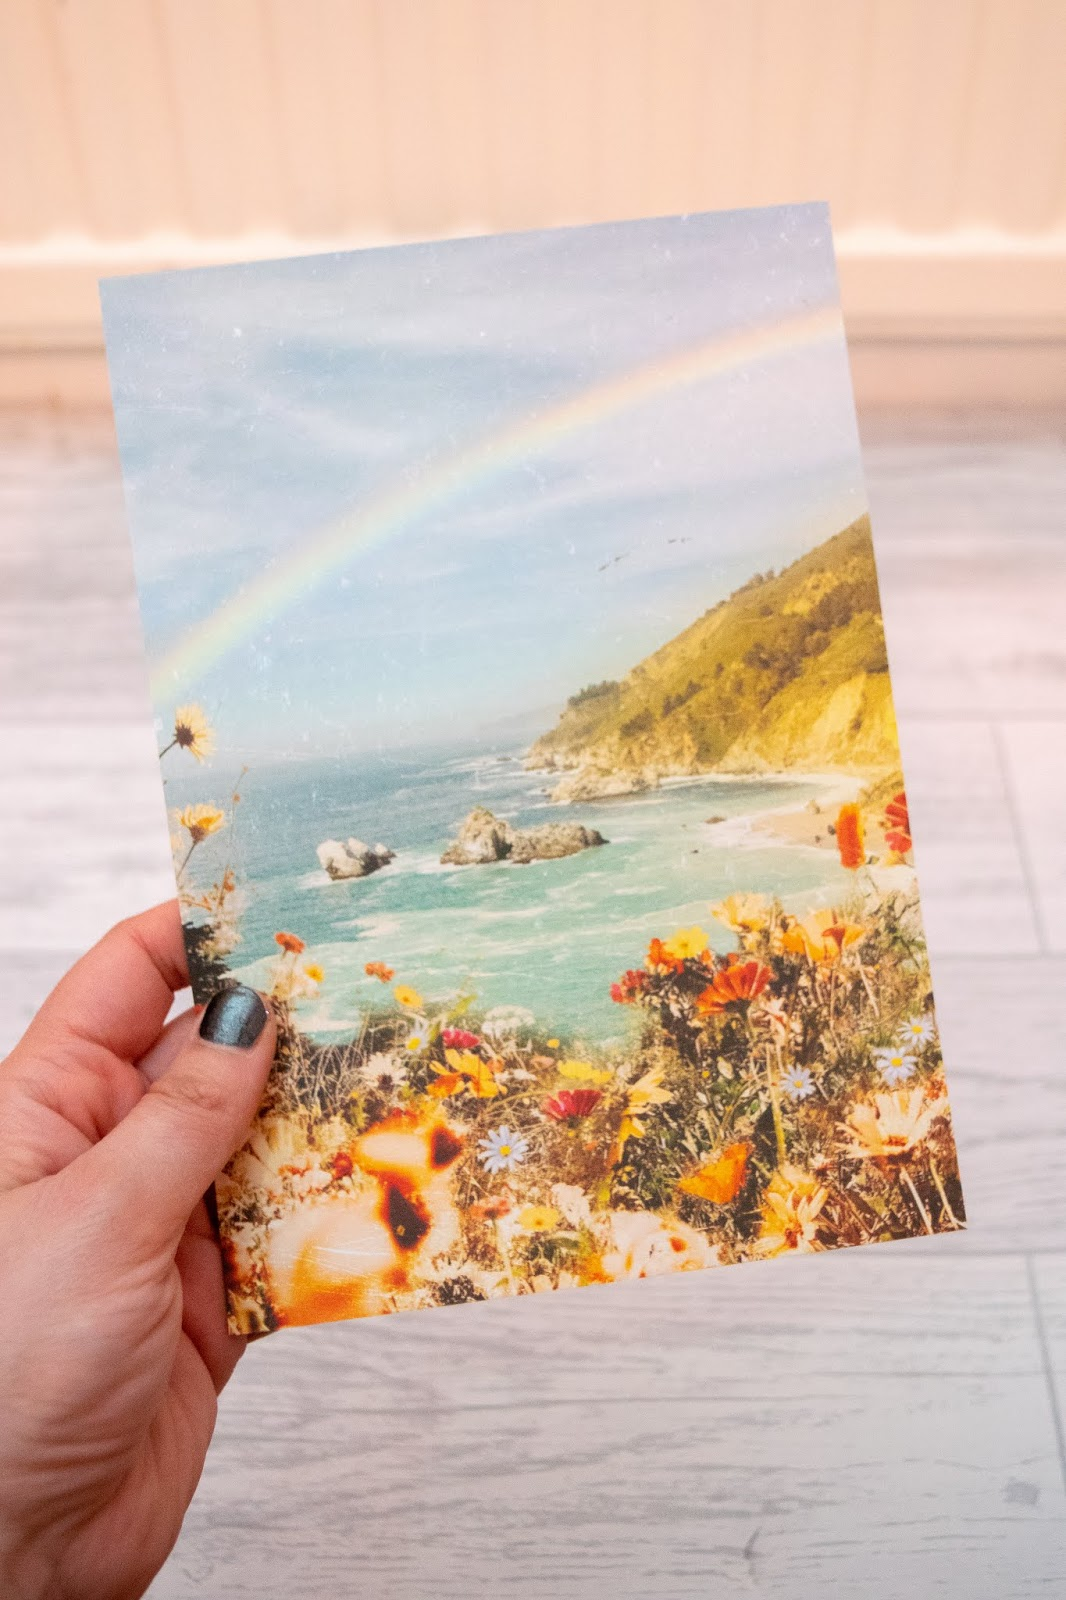 A print of a seascape with a beach, rainbow in the distance and florals towards the front.